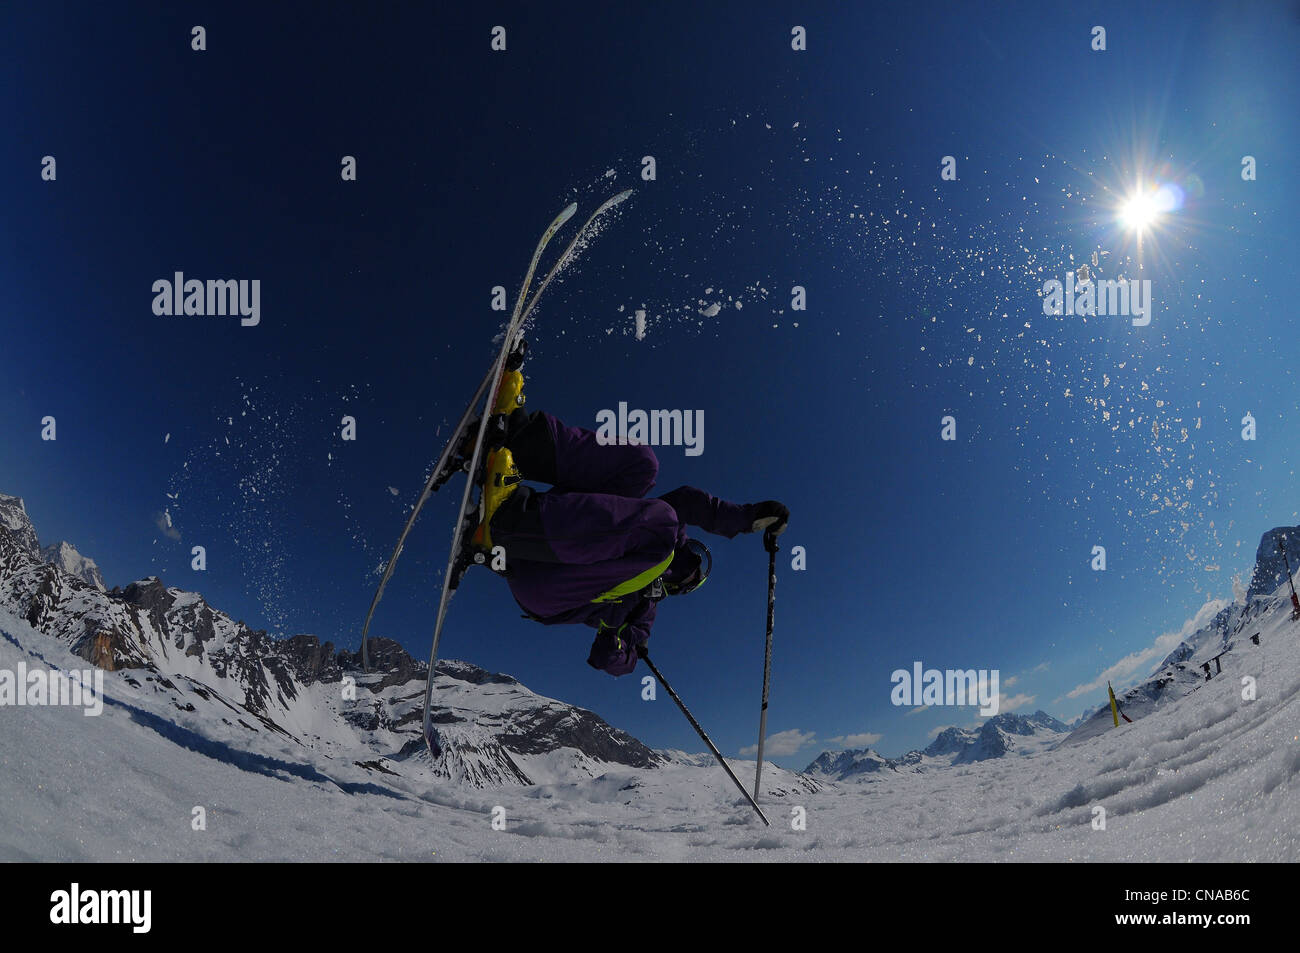 A skier performs a flip using his poles in the ski resort of Courchevel in France. - Stock Image